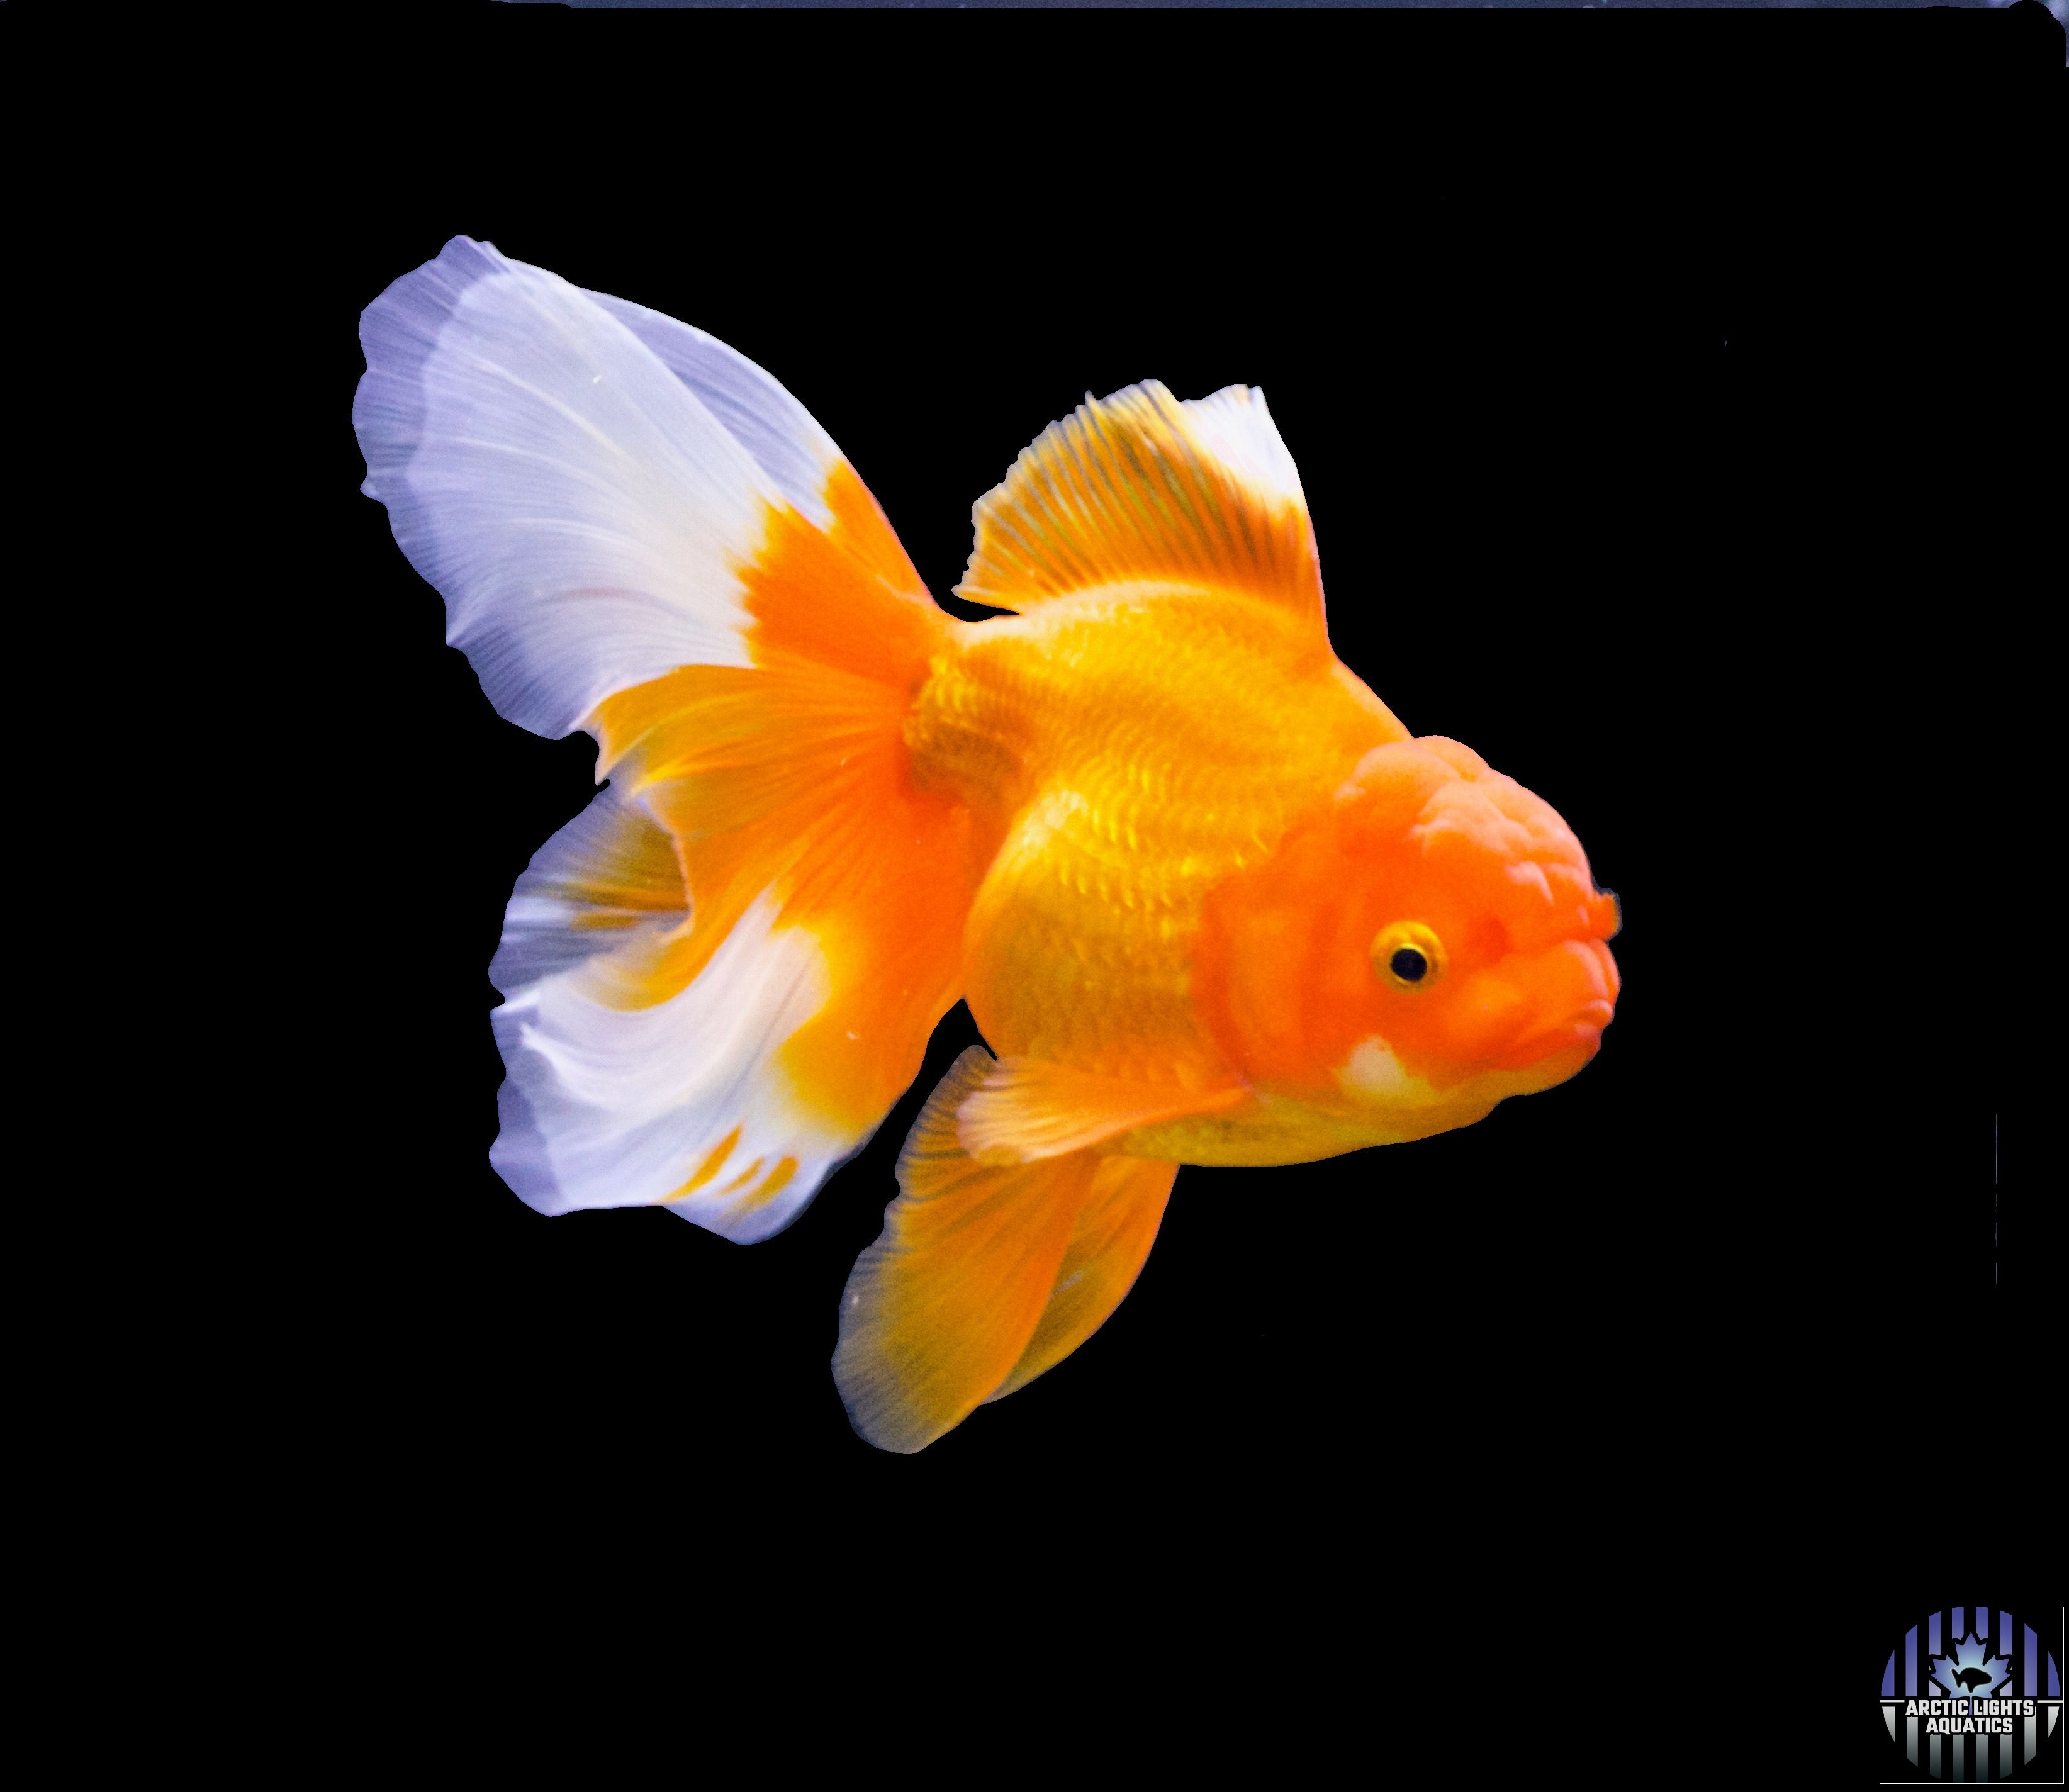 This Is One Of Our Beautiful Oranda Goldfish Sephina Click On The Image To Be Taken To Our Youtube Channel Wh Oranda Goldfish Goldfish Types Fantail Goldfish